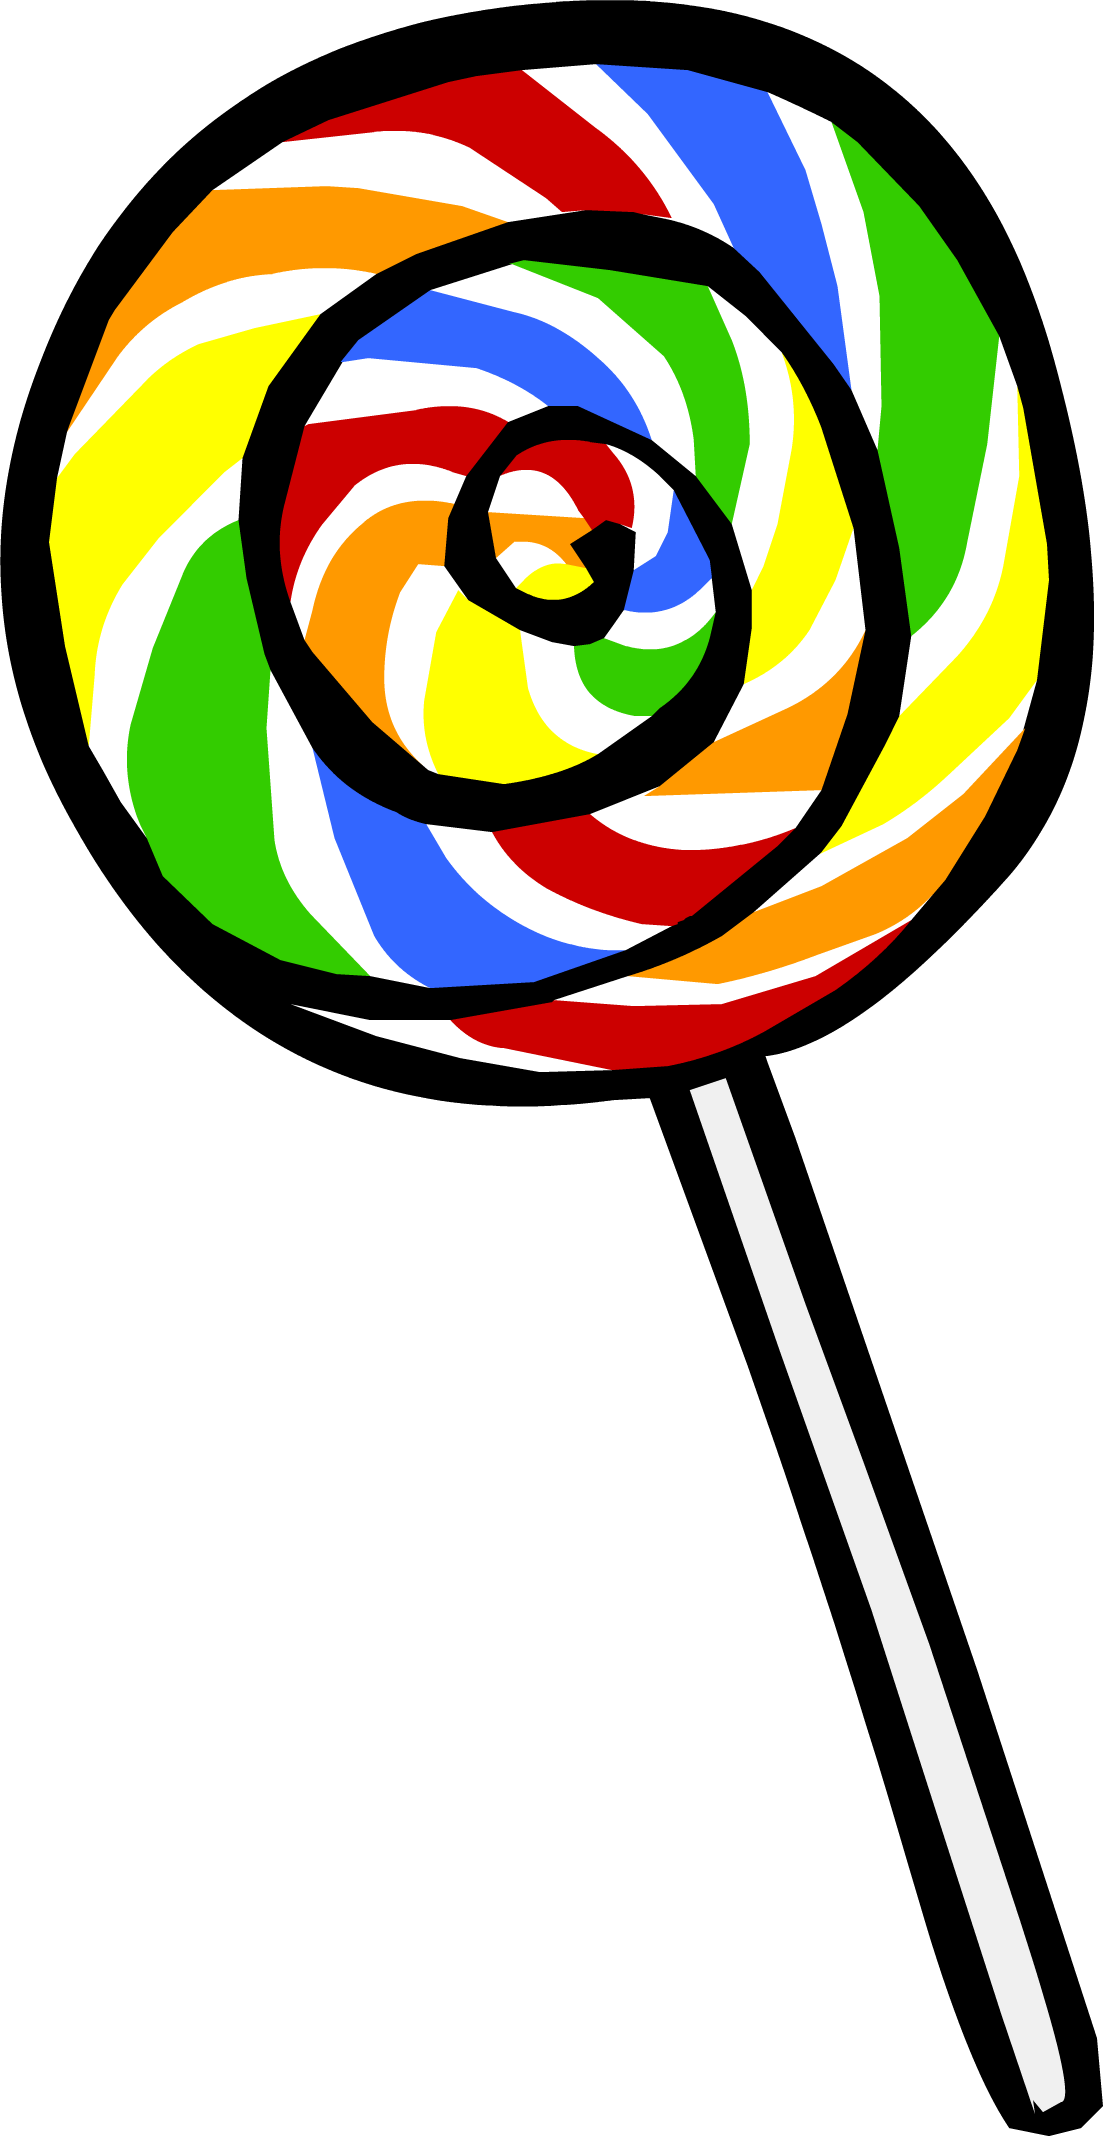 png royalty free Lollipop clipart cany. Image candy png club.